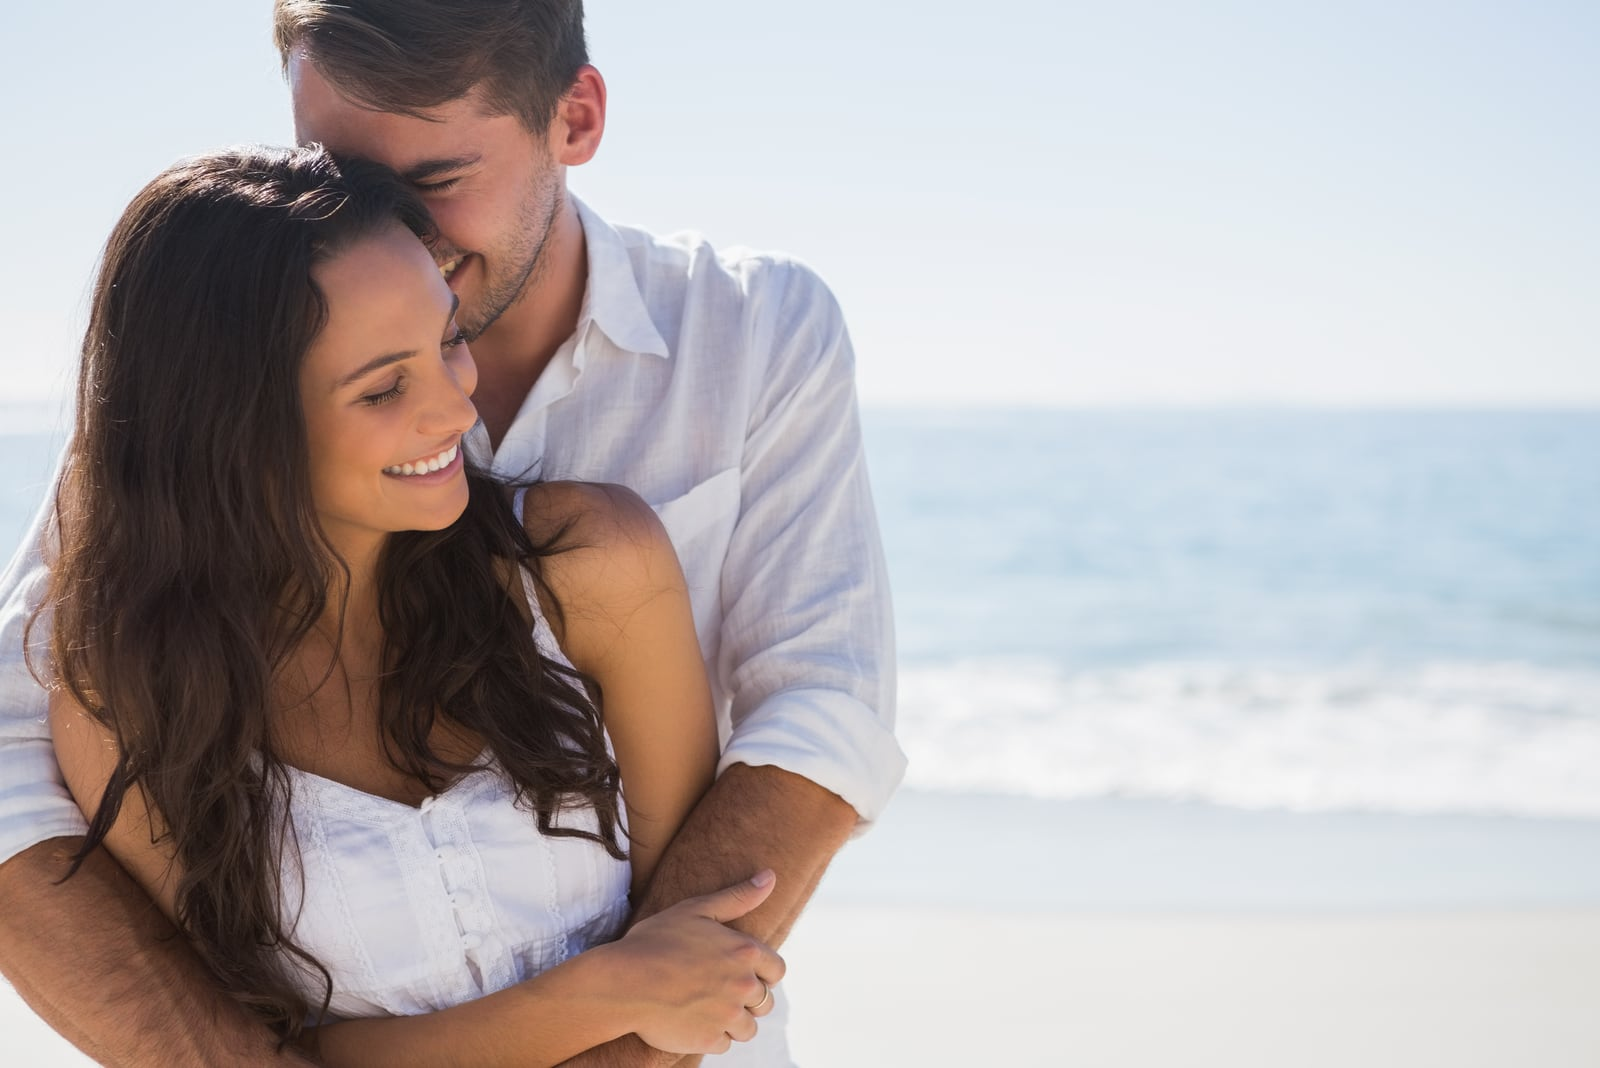 a happy loving couple hugging on the beach